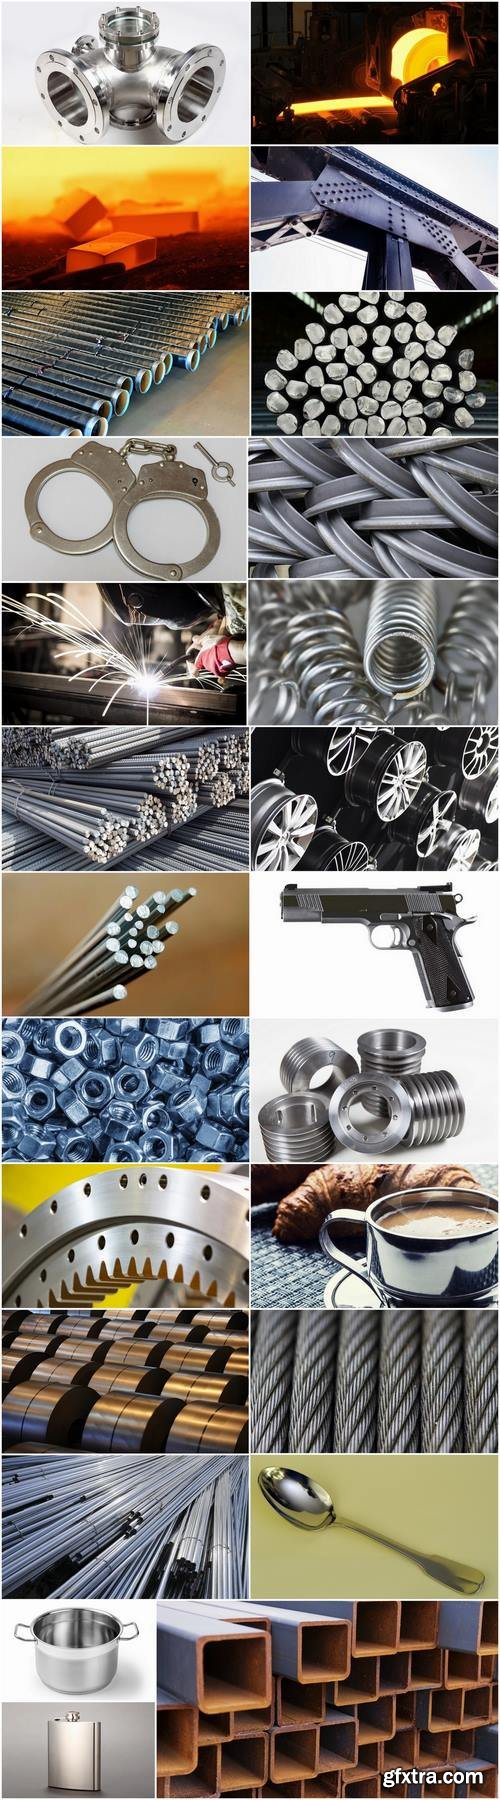 Steel product pipe fittings steel cup pot production 25 HQ Jpeg